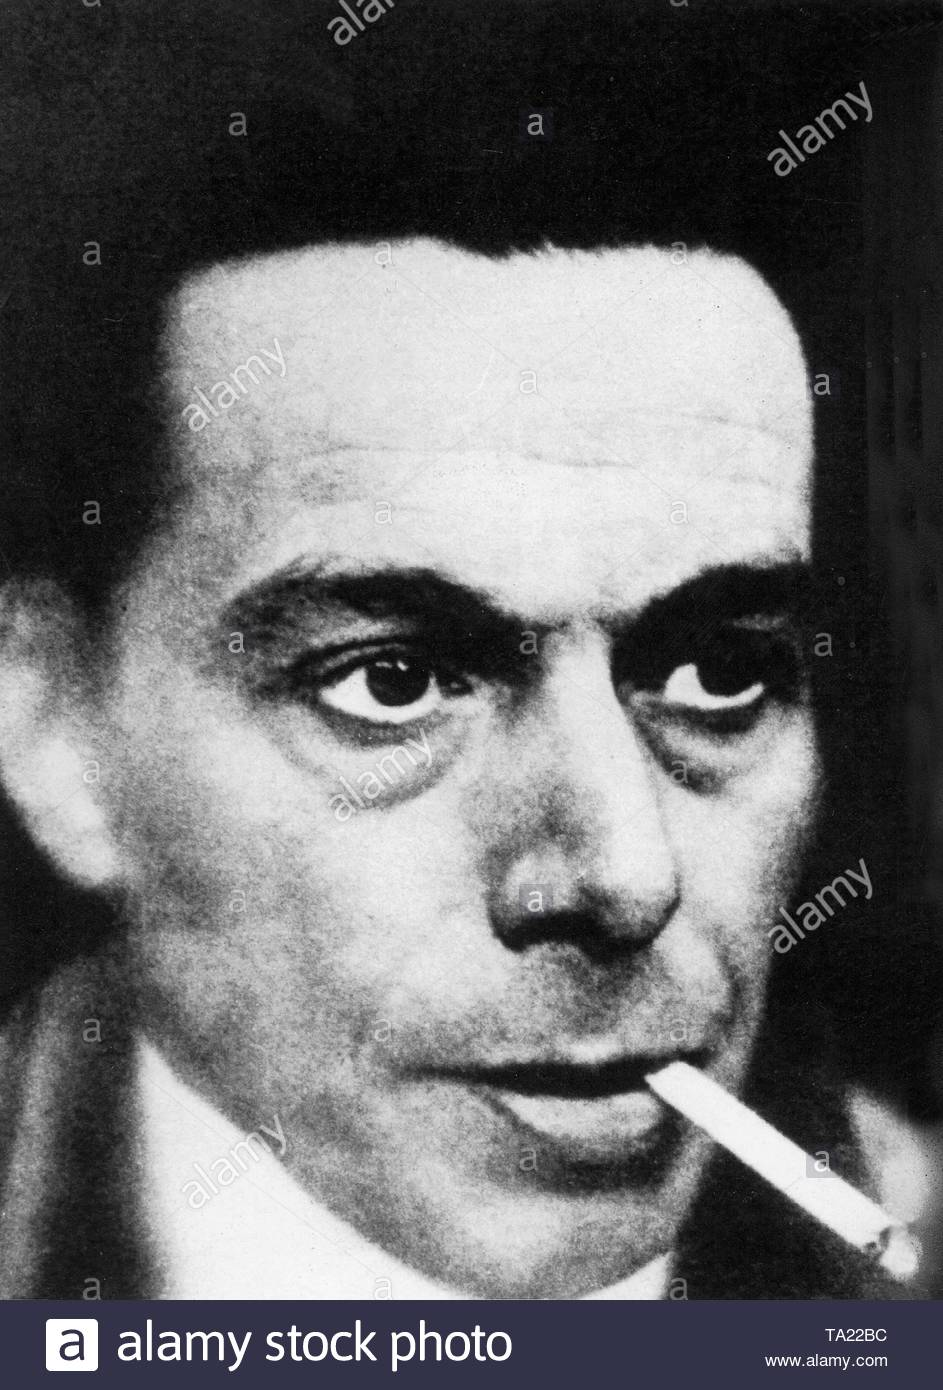 Ernst Ludwig Kirchner. Painter and graphic artist and pioneer of German Expressionism. - Stock Image